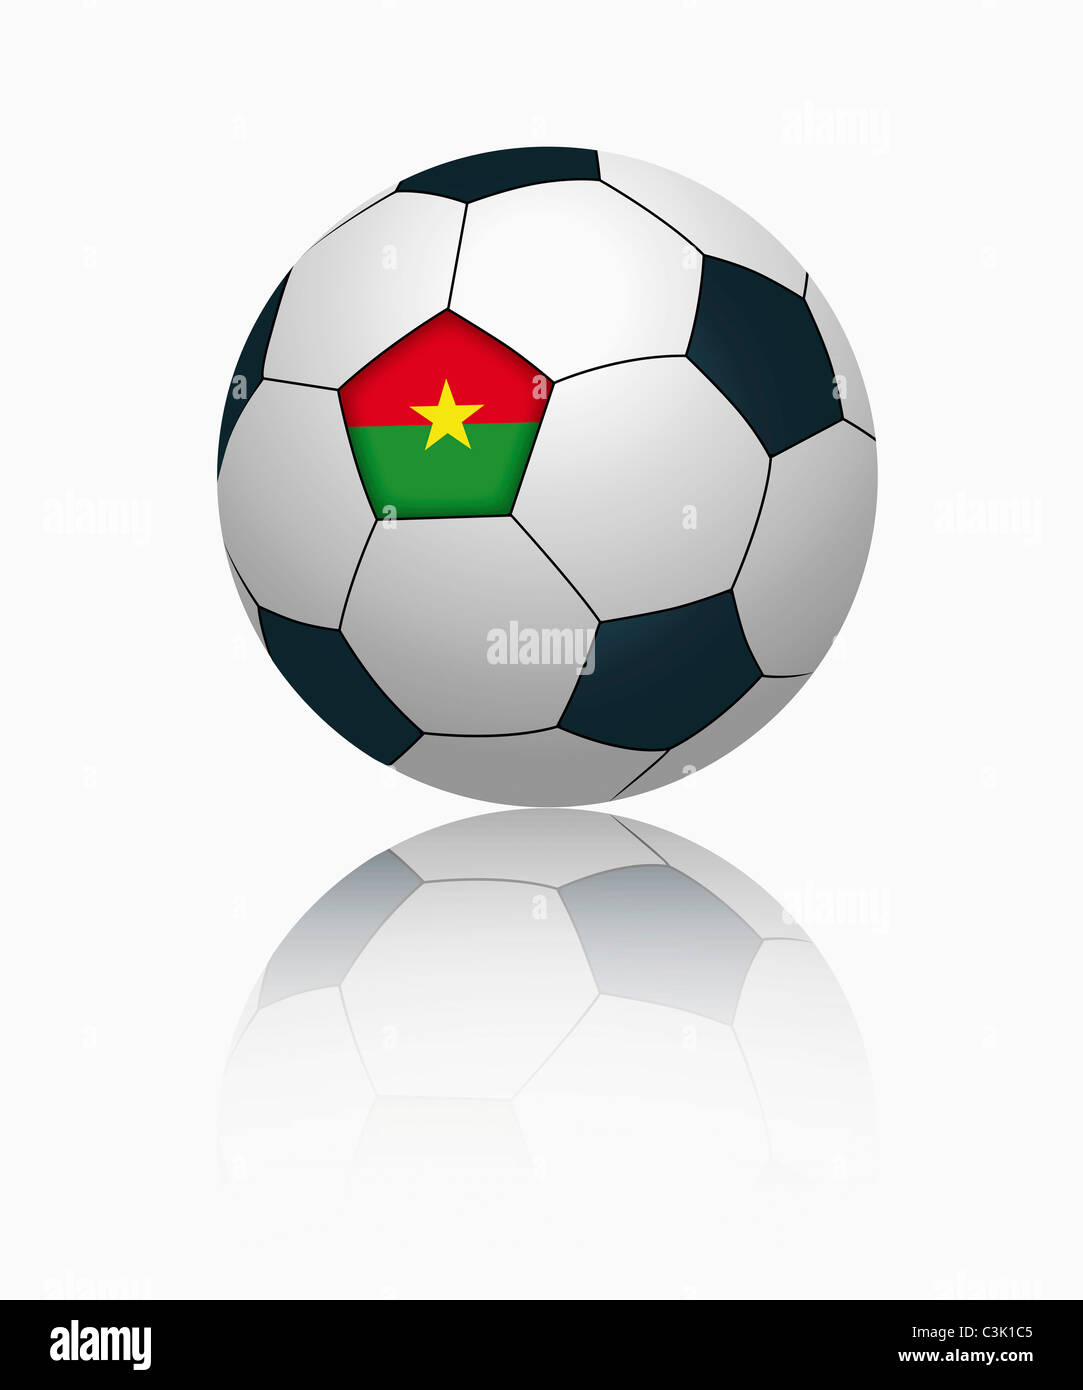 Burkina faso flag on football, close up - Stock Image